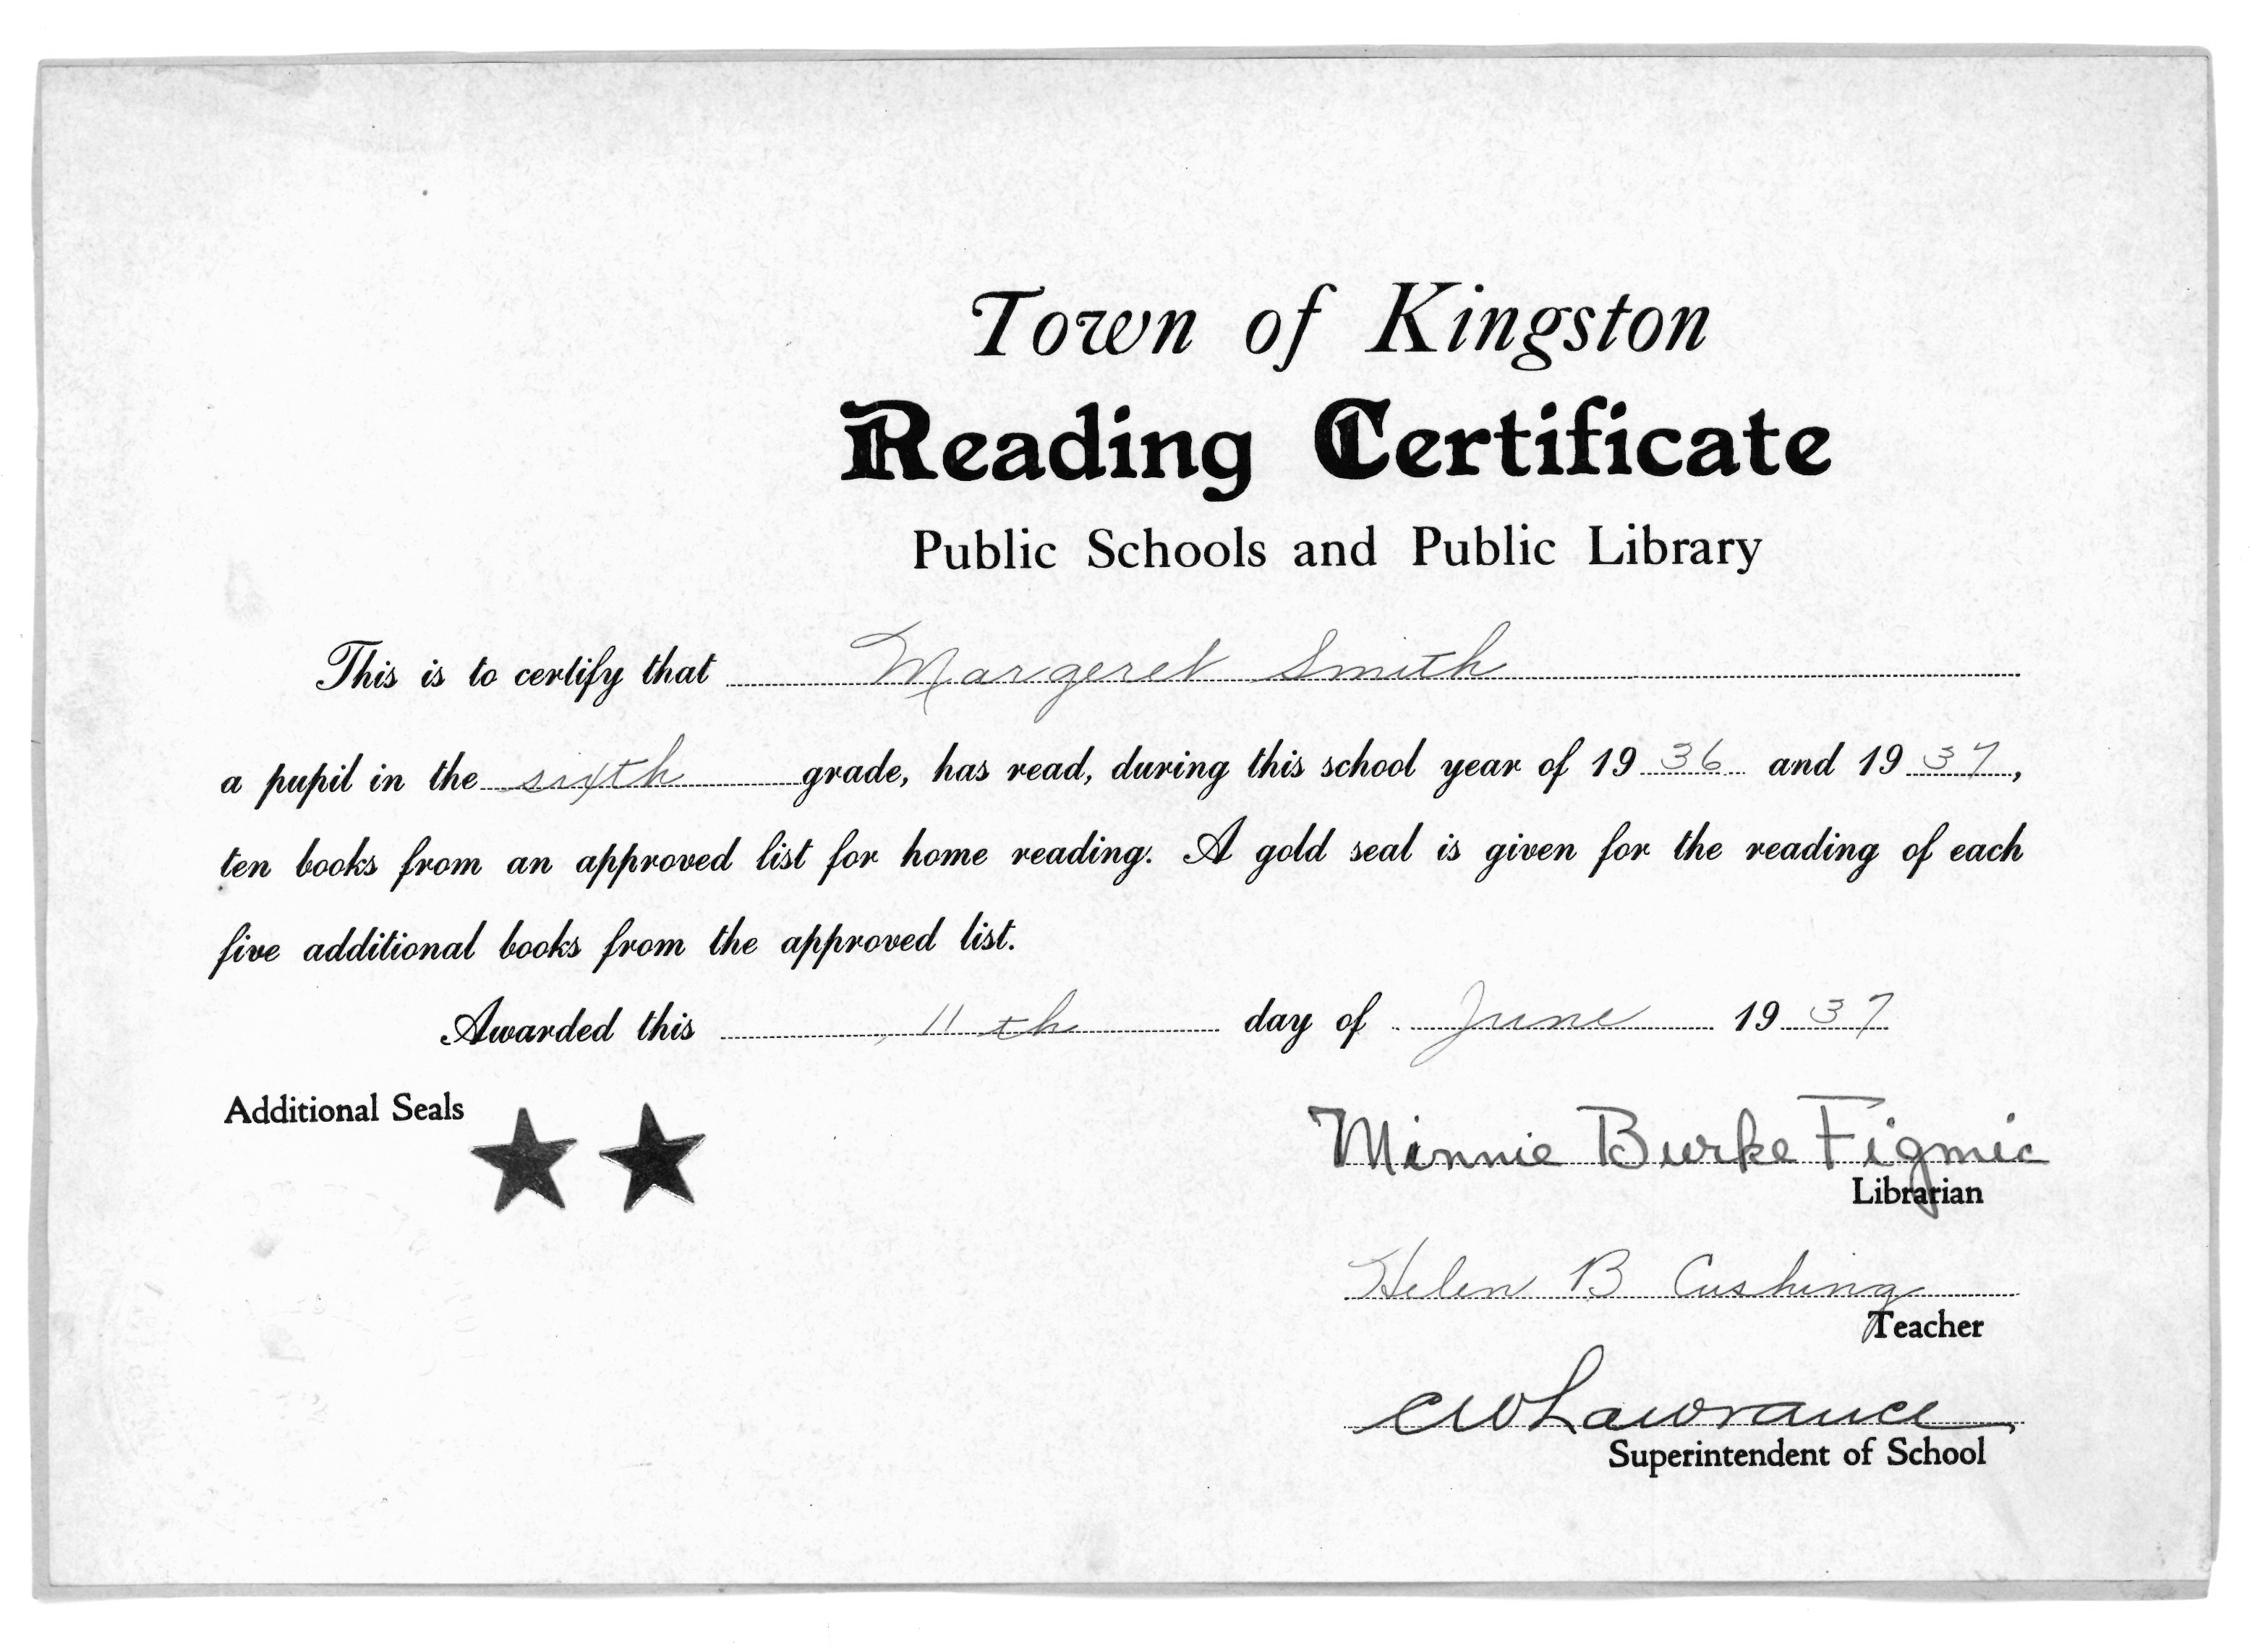 Town of Kingston Reading Certificate, 1937